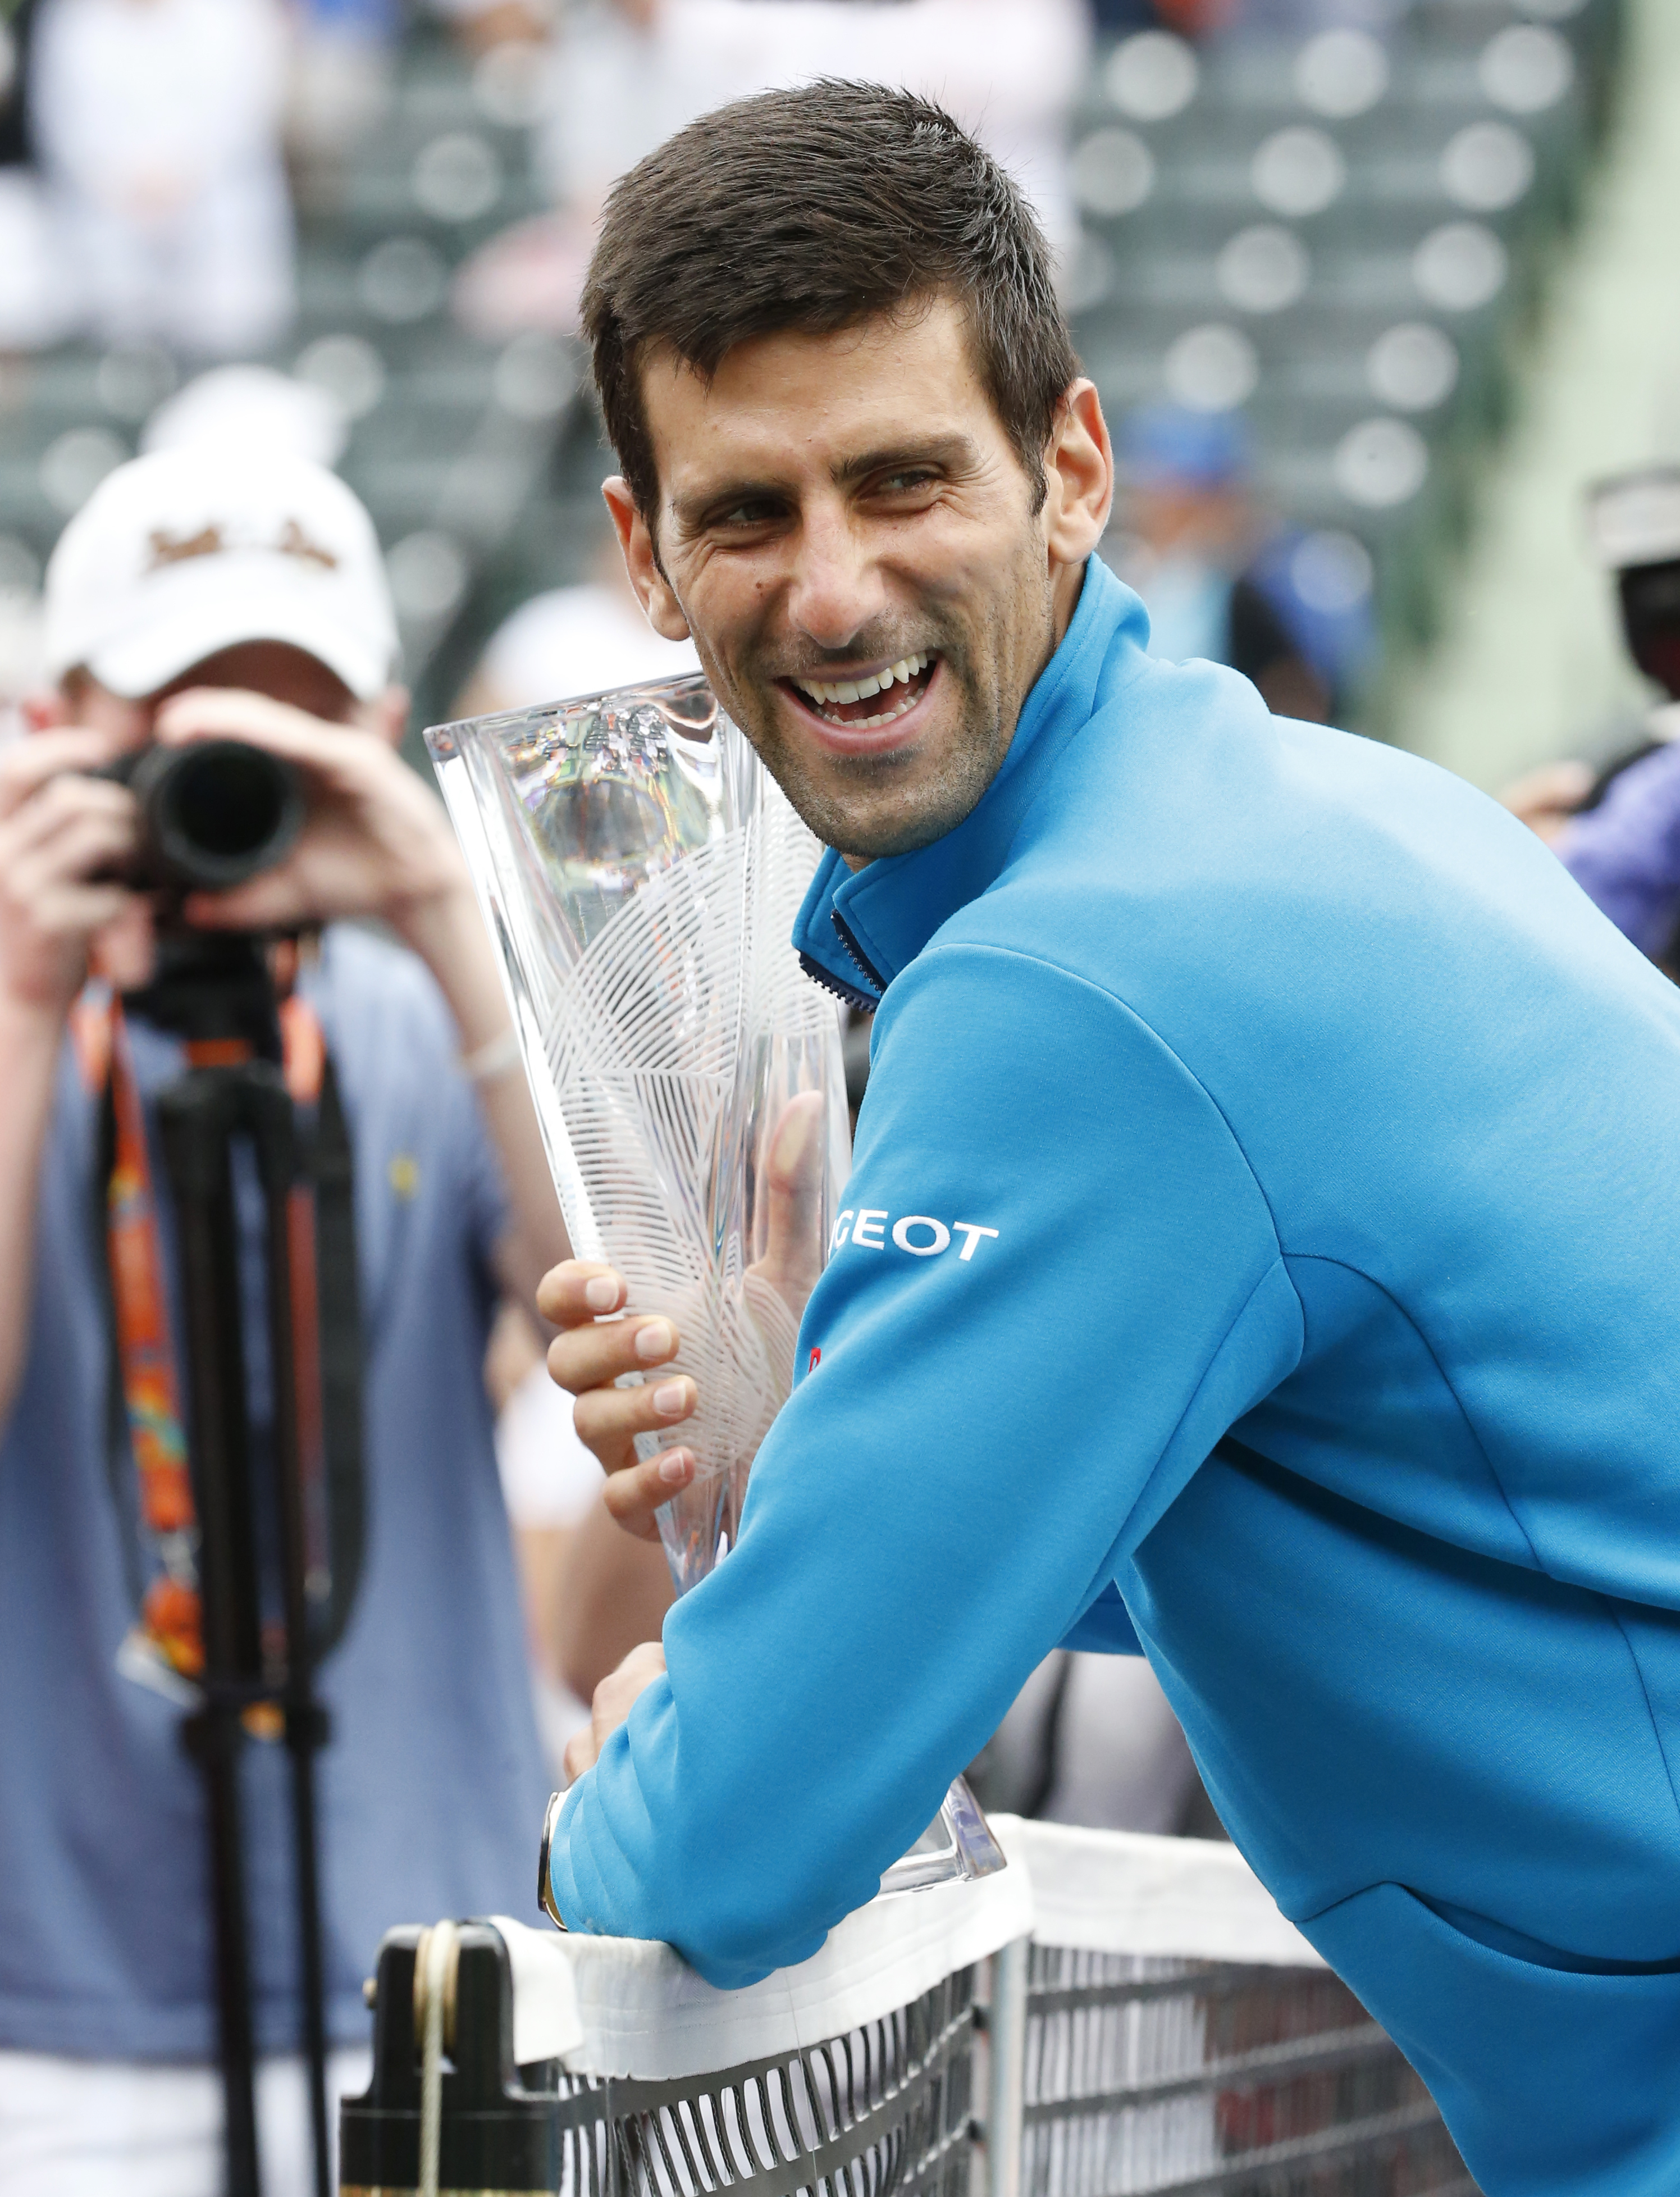 Novak Djokovic, of Serbia, smiles as he poses for photos after defeating Kei Nishikori, of Japan, 6-3, 6-3, during the men's singles final match at the Miami Open tennis tournament, Sunday, April 3, 2016, in Key Biscayne, Fla. (AP Photo/Wilfredo Lee)